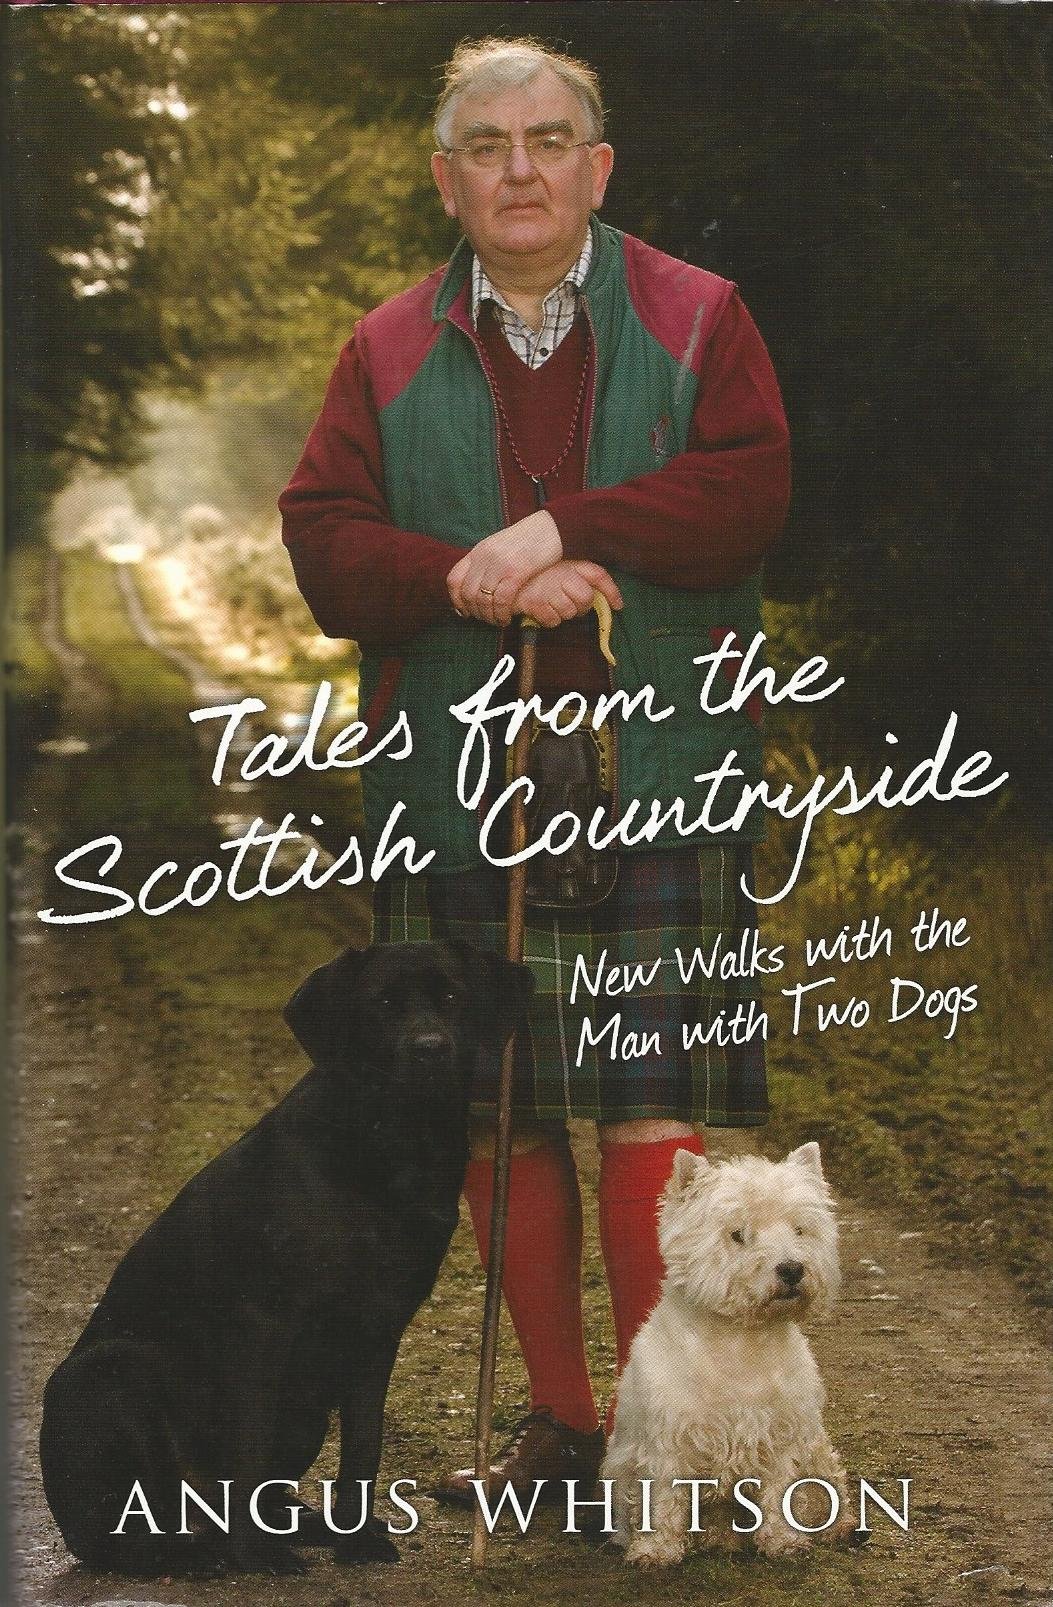 Image for Tales from the Scottish Countryside: New Walks with the Man with Two Dogs